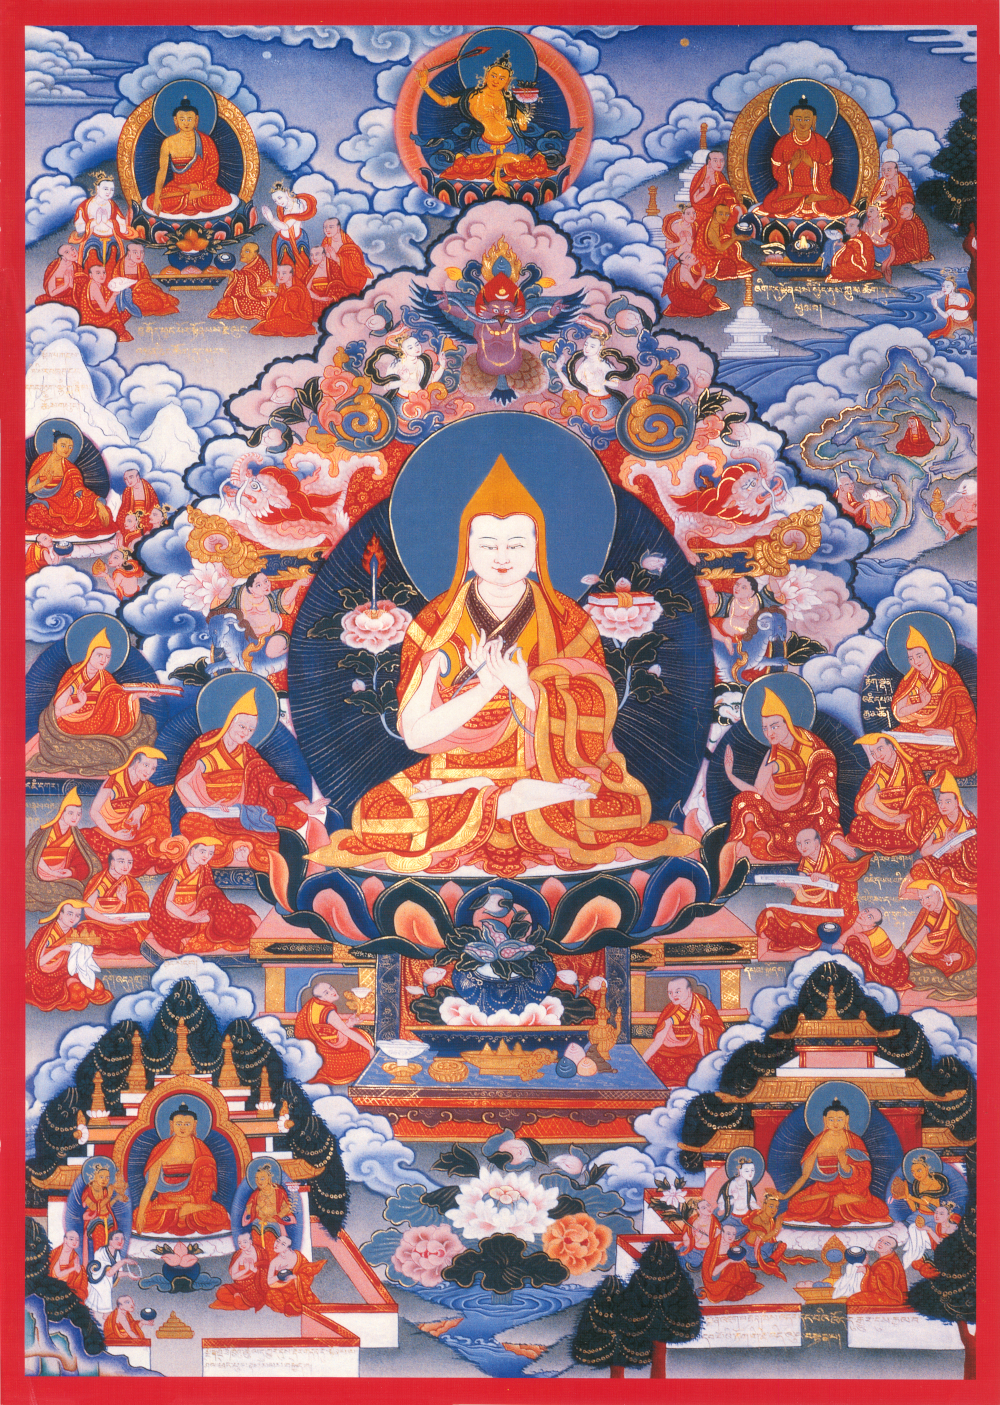 Rinpoche's Recommendations for the 600th Anniversary of Lama Tsongkhapa's Parinirvana on December 21